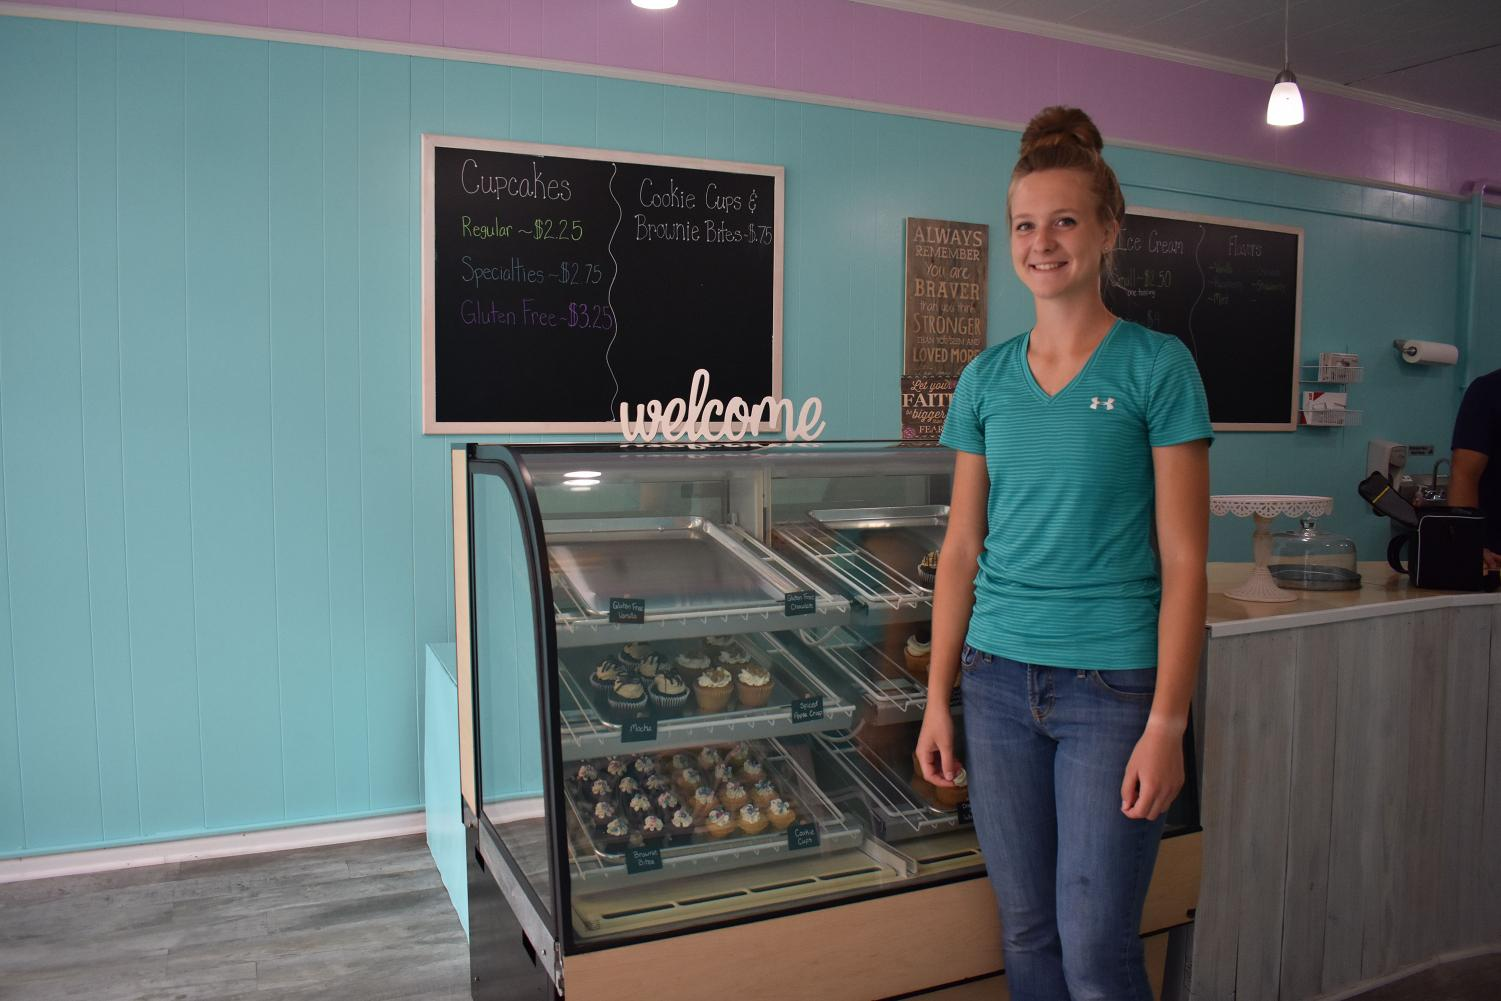 Andra S., owner of Priceless Treats, poses by her cupcakes on the bakery's opening day.